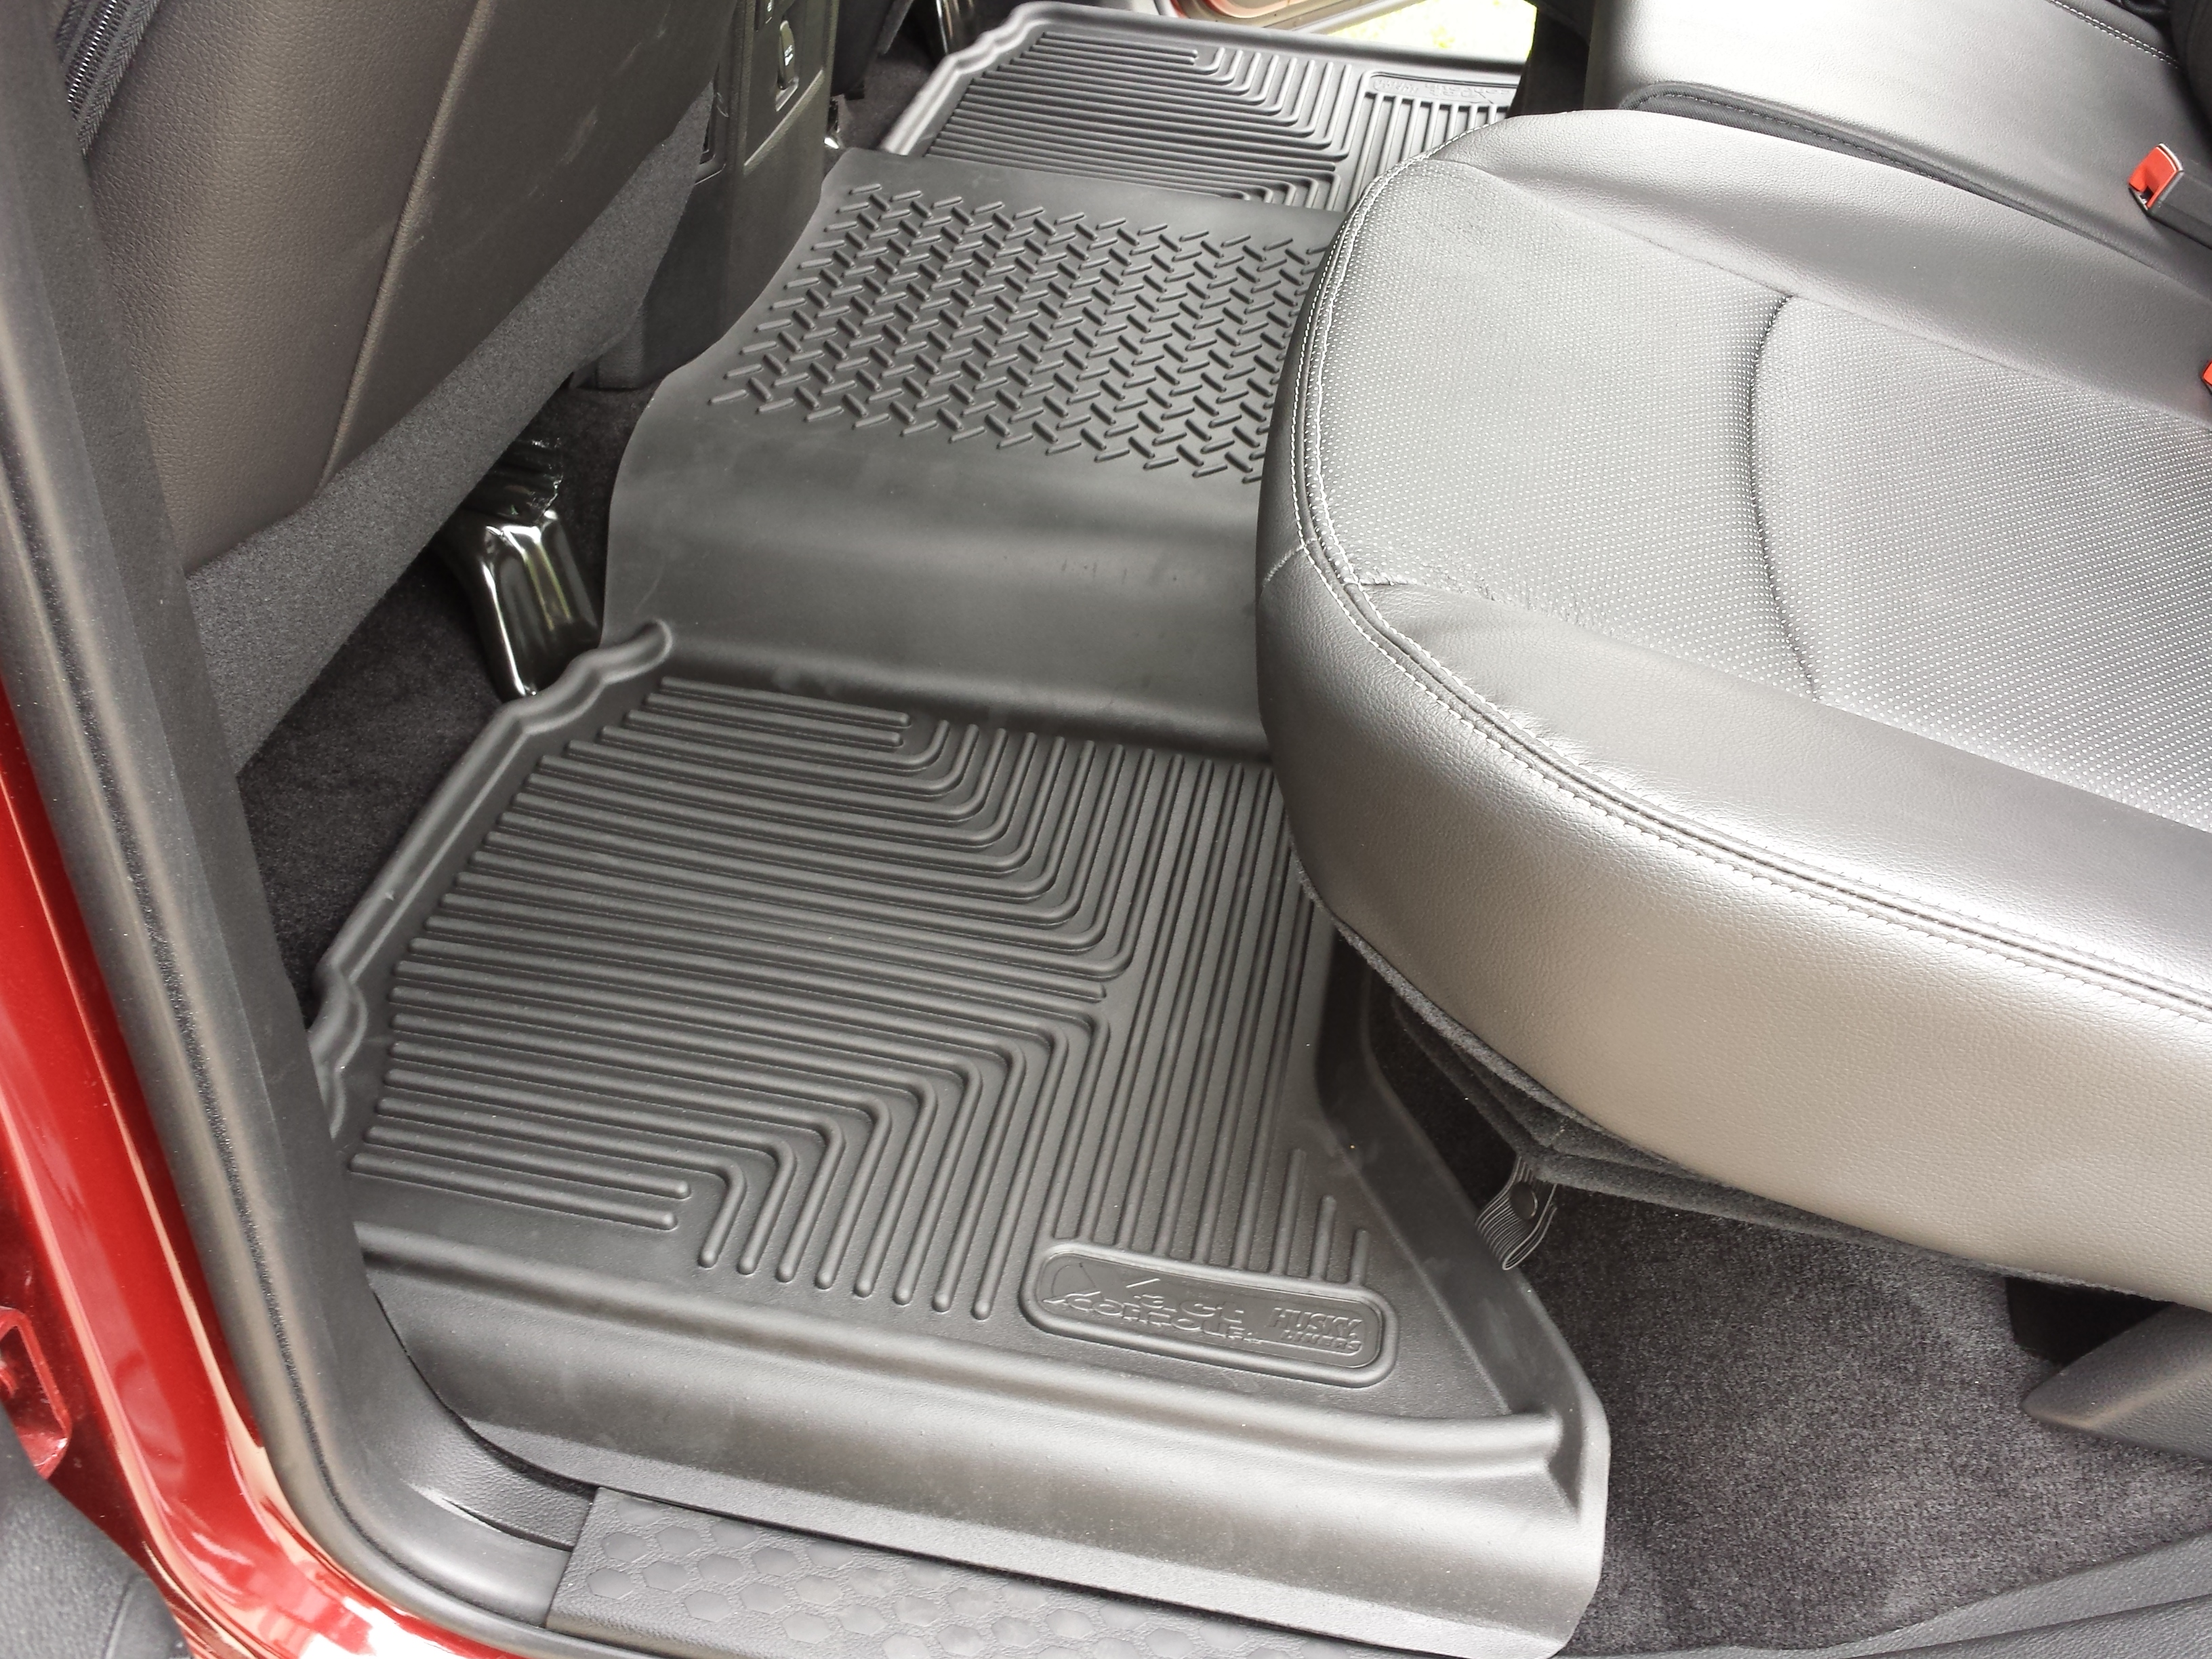 mat floor the black coverage over avm mpn universal and weathertech full hump row mats